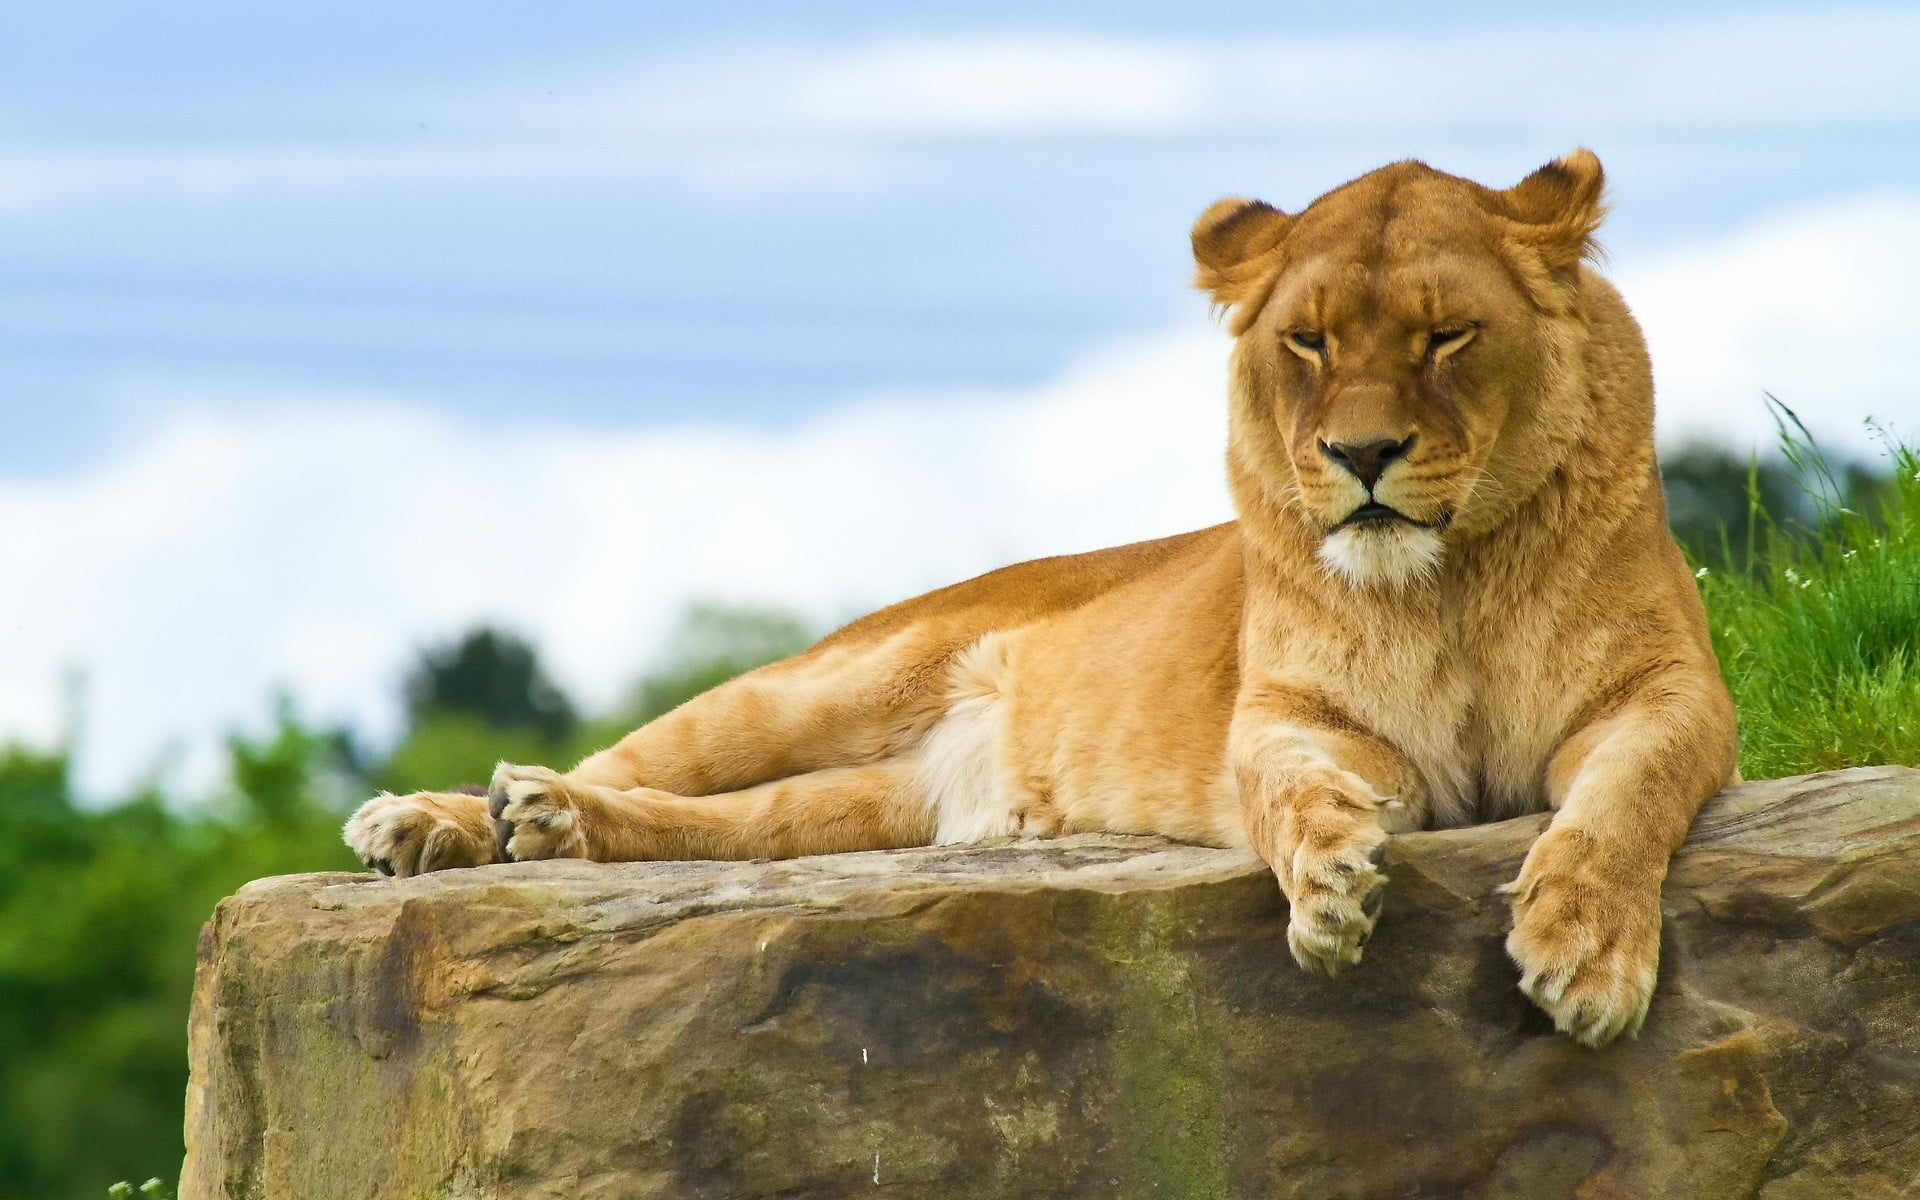 Brown lion lying on stone during daytime HD wallpaper | Wallpaper Flare